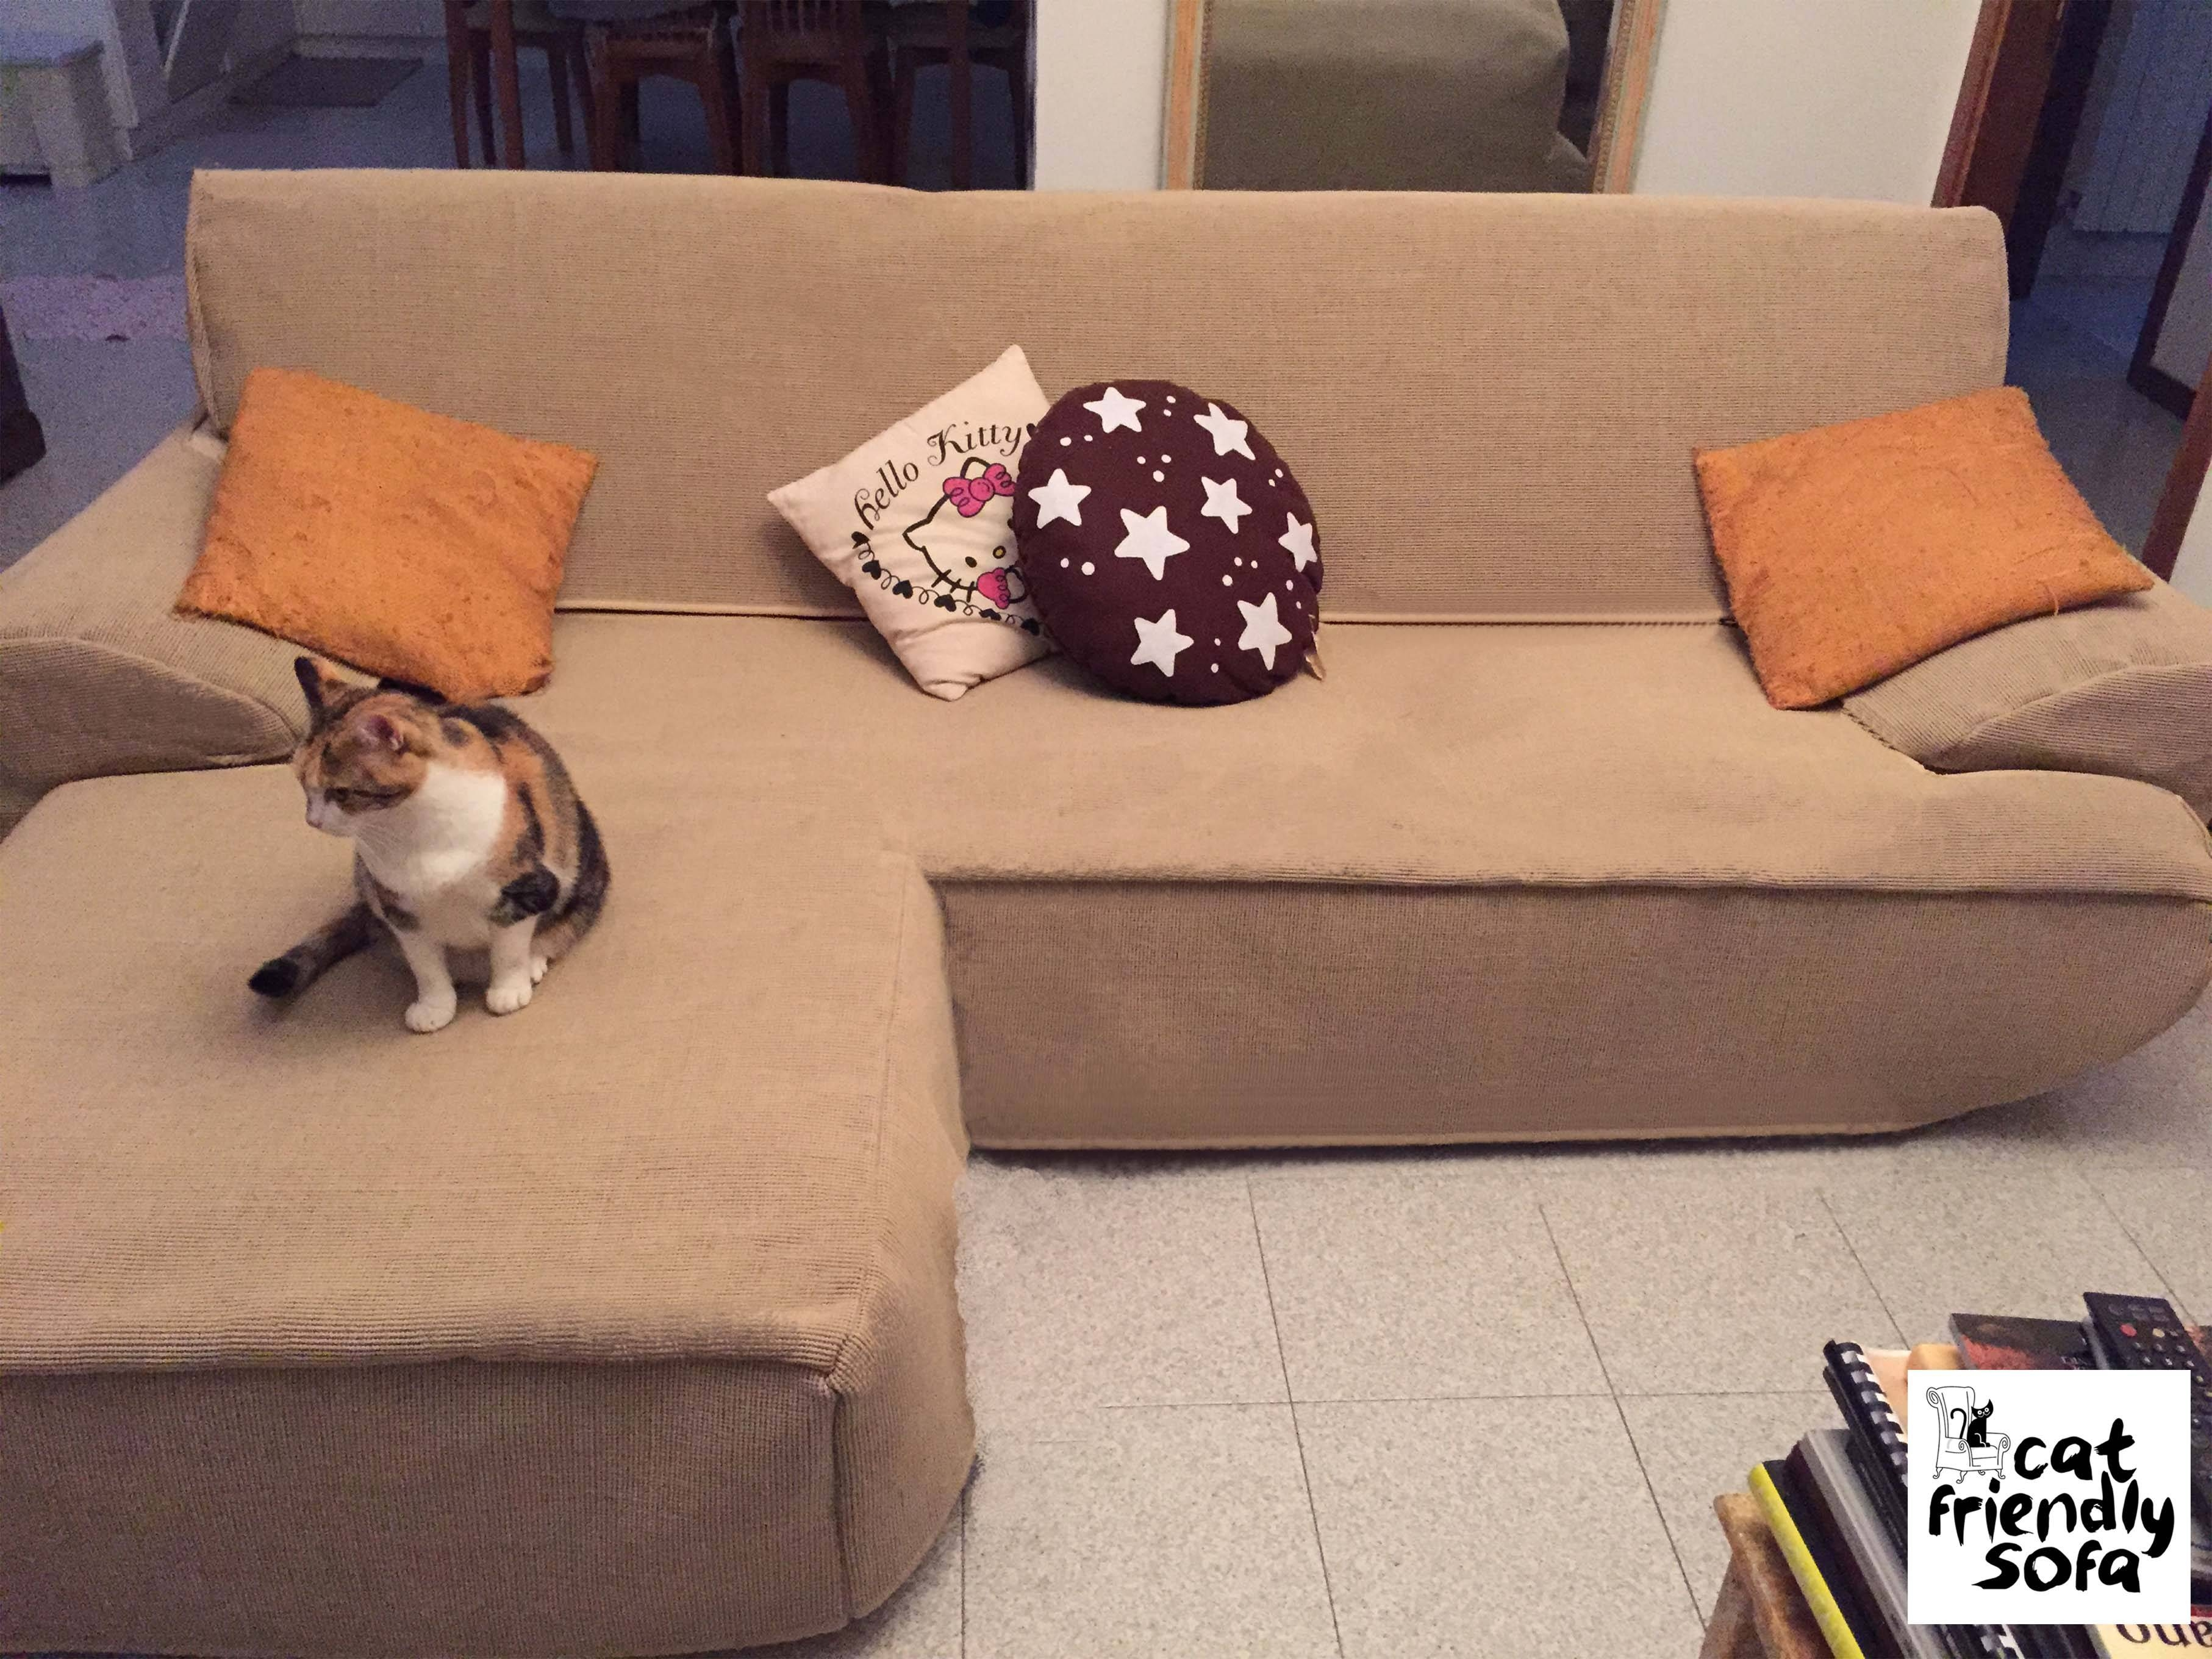 Tested Anti Scratch Cover For Sofa | Cat Friendly Sofa With Regard To Cat Proof Sofas (View 14 of 15)